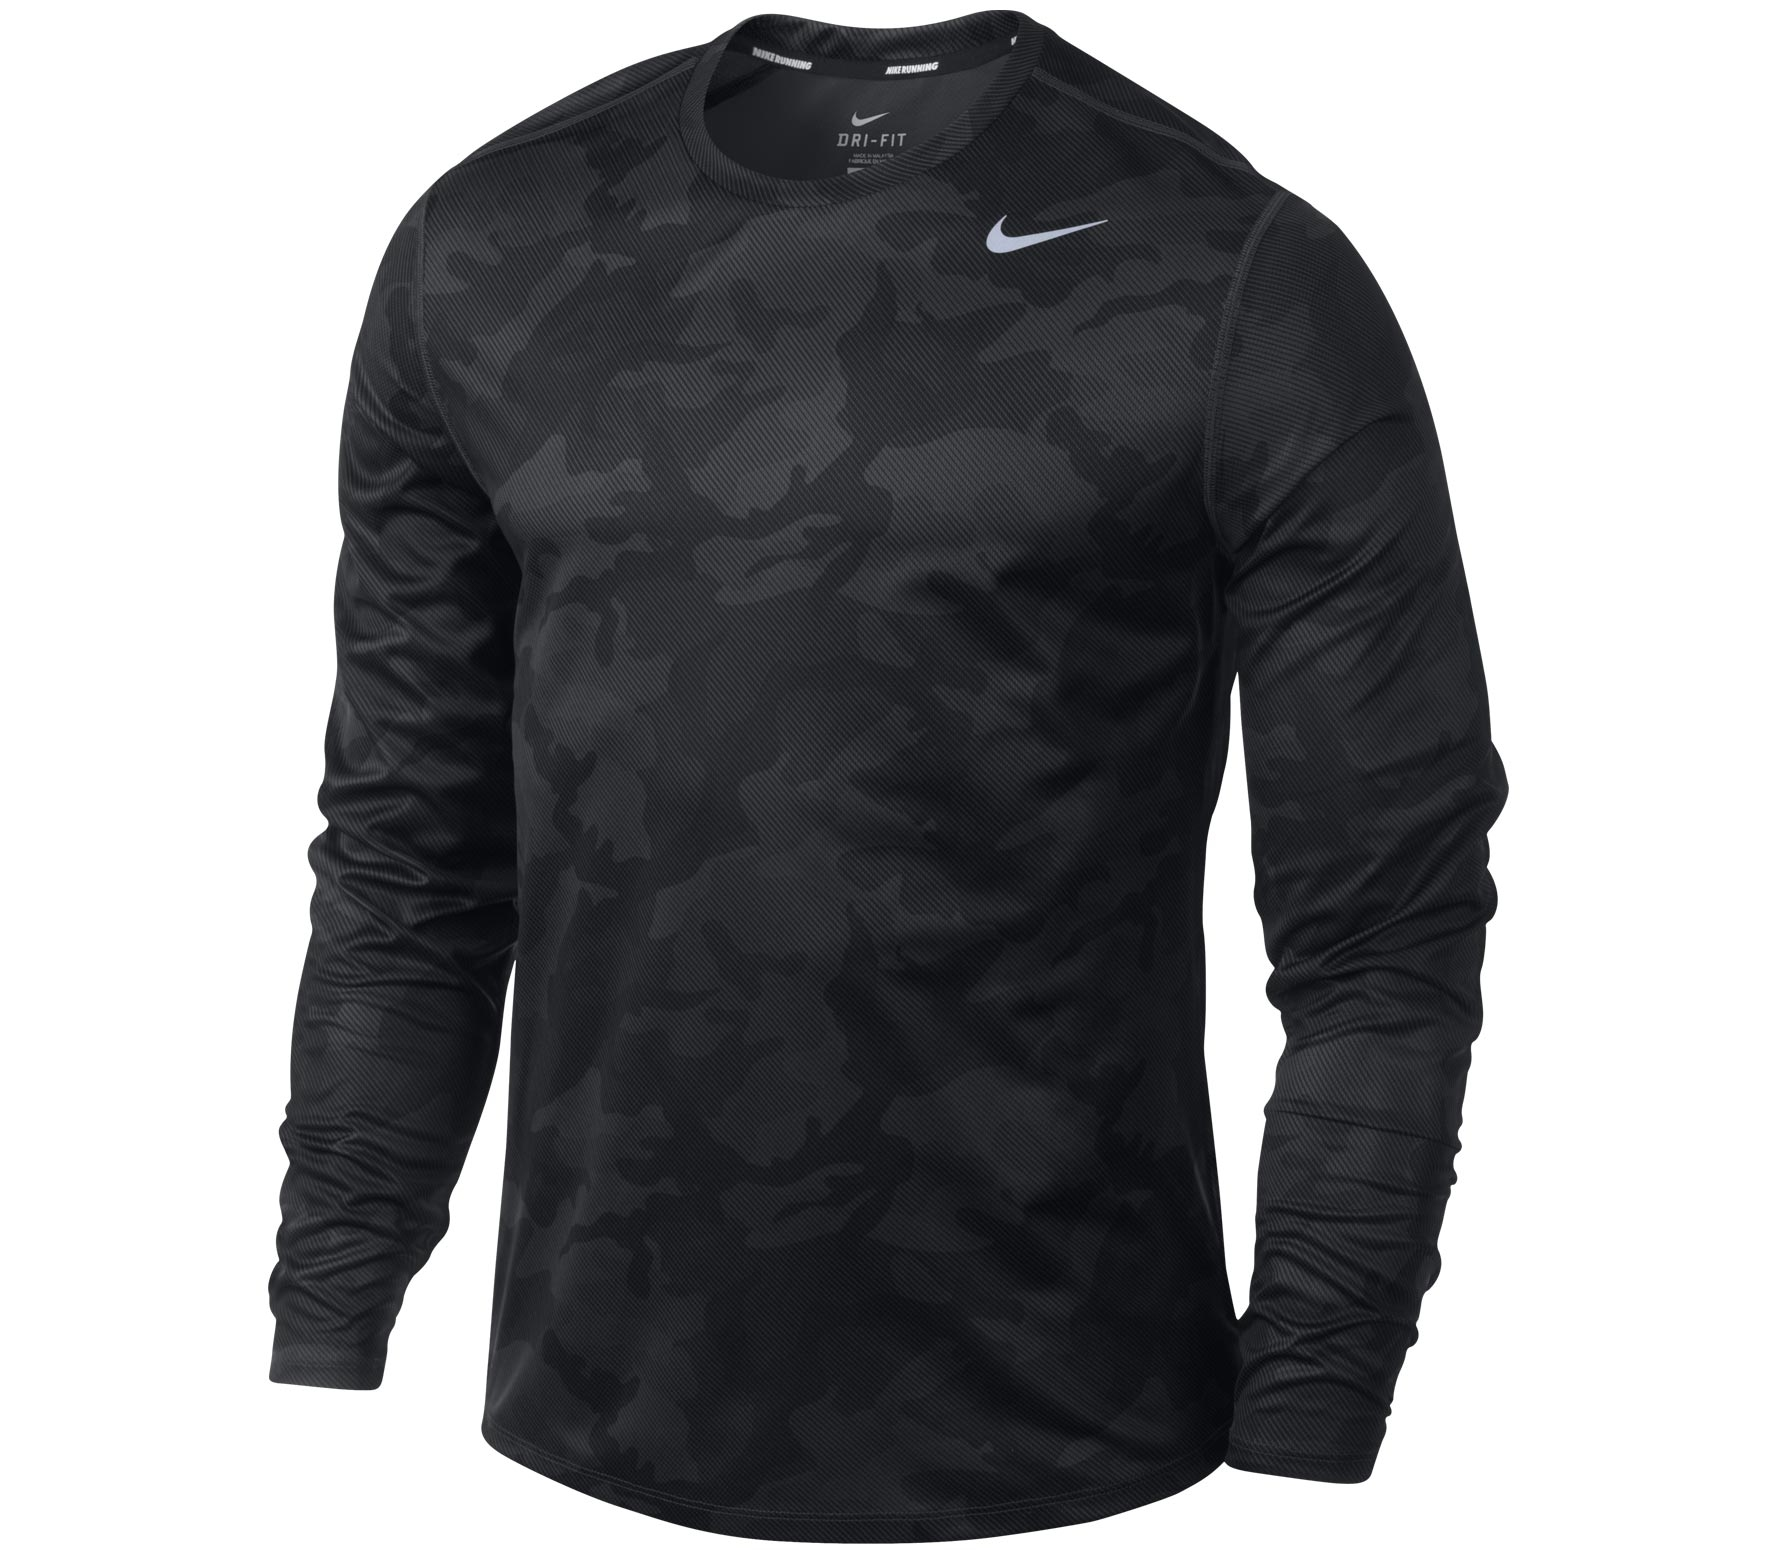 Nike Shirts And Running On Pinterest